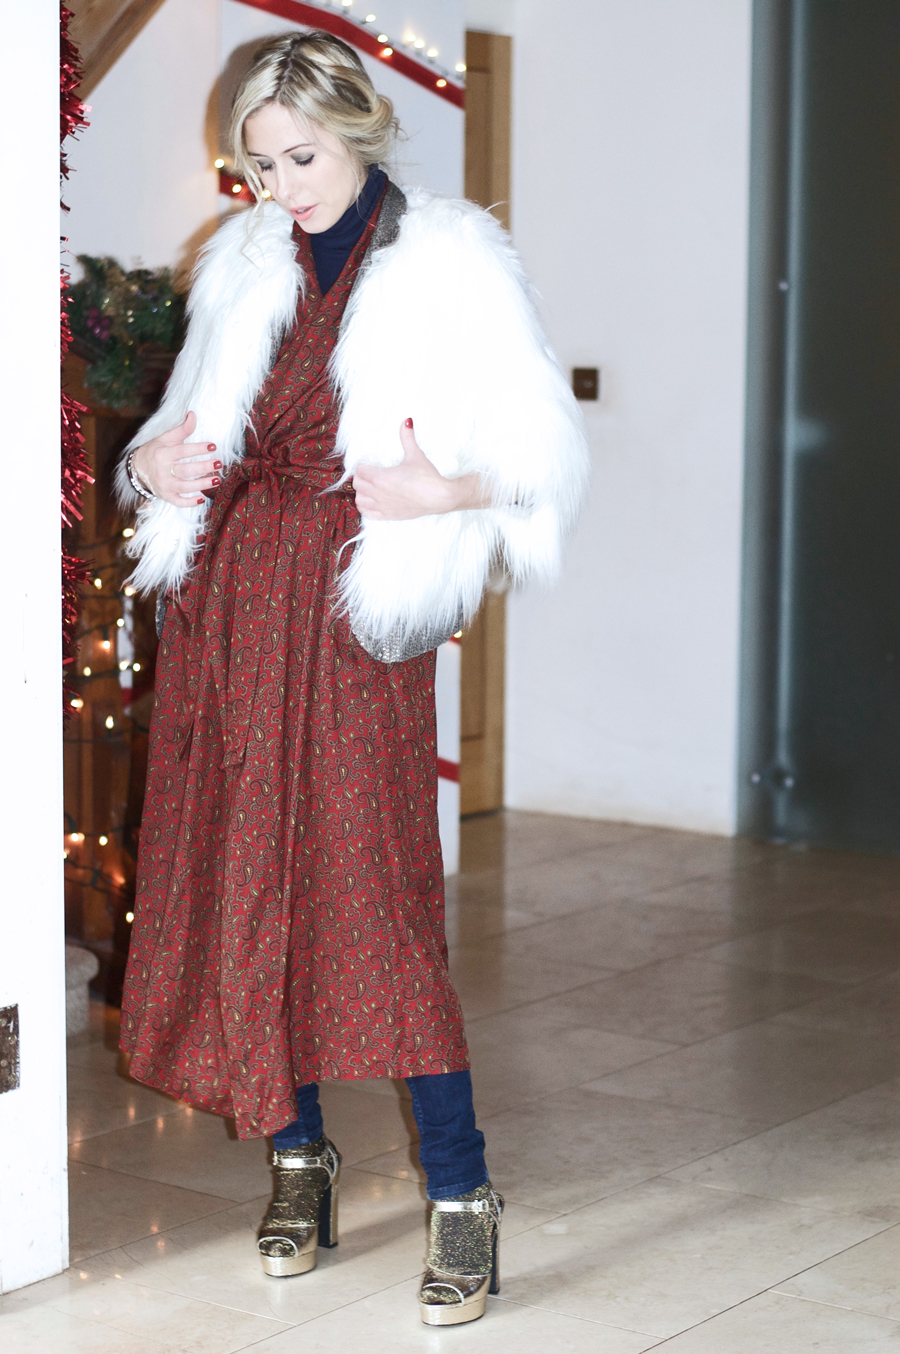 My Christmas Eve Outfit: Paisley Print & Fur